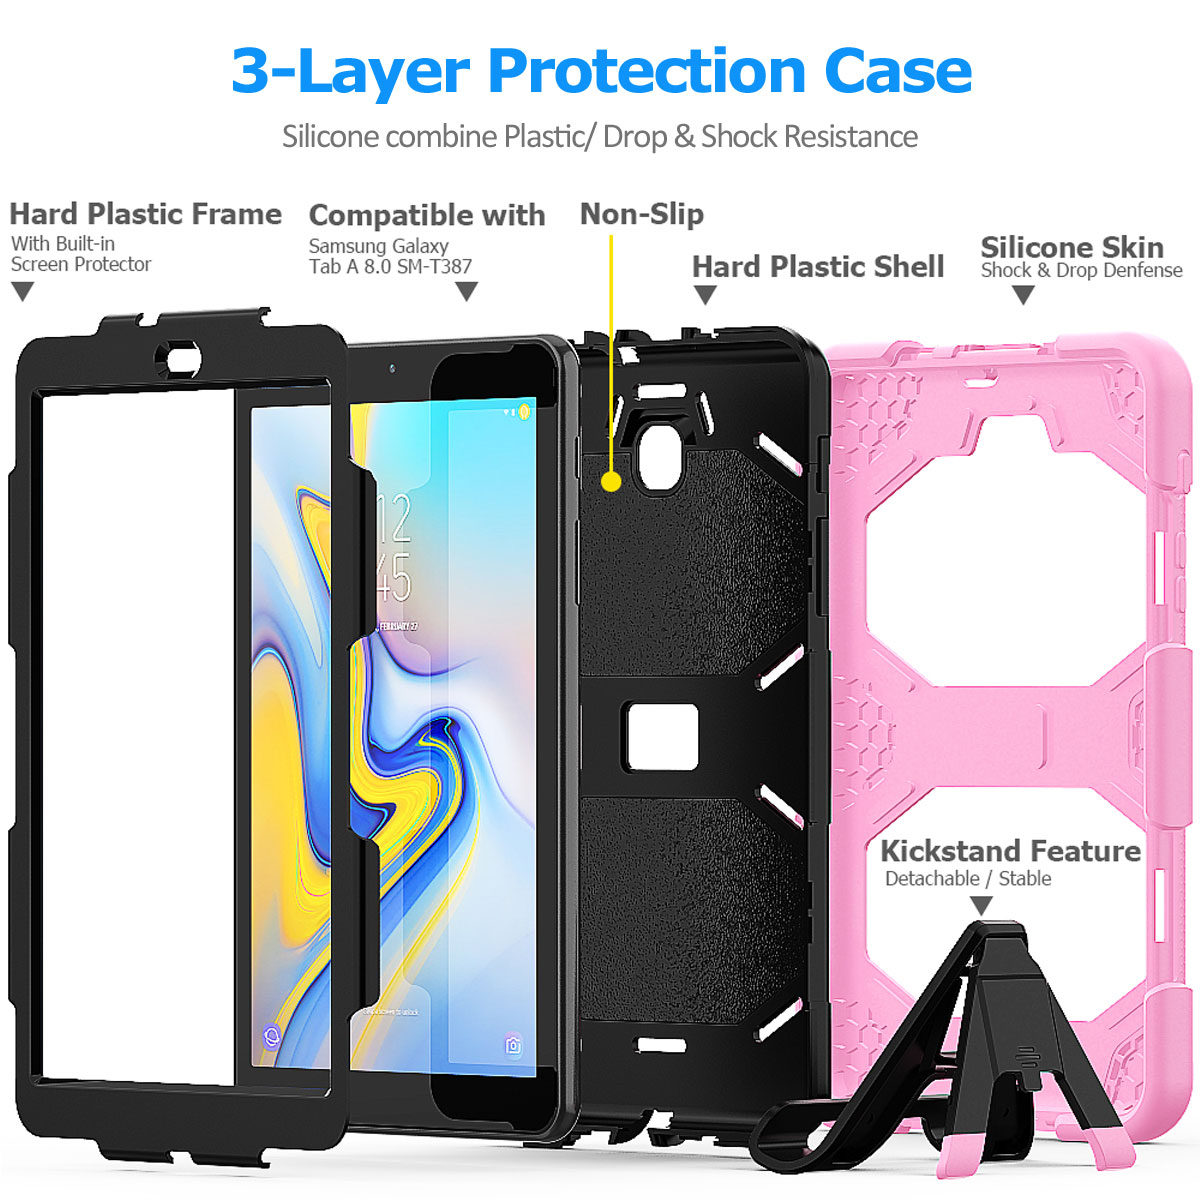 Rugged-Hard-Case-For-Samsung-Galaxy-Tab-A-8-0-2018-SM-T387-with-Screen-Protector thumbnail 49